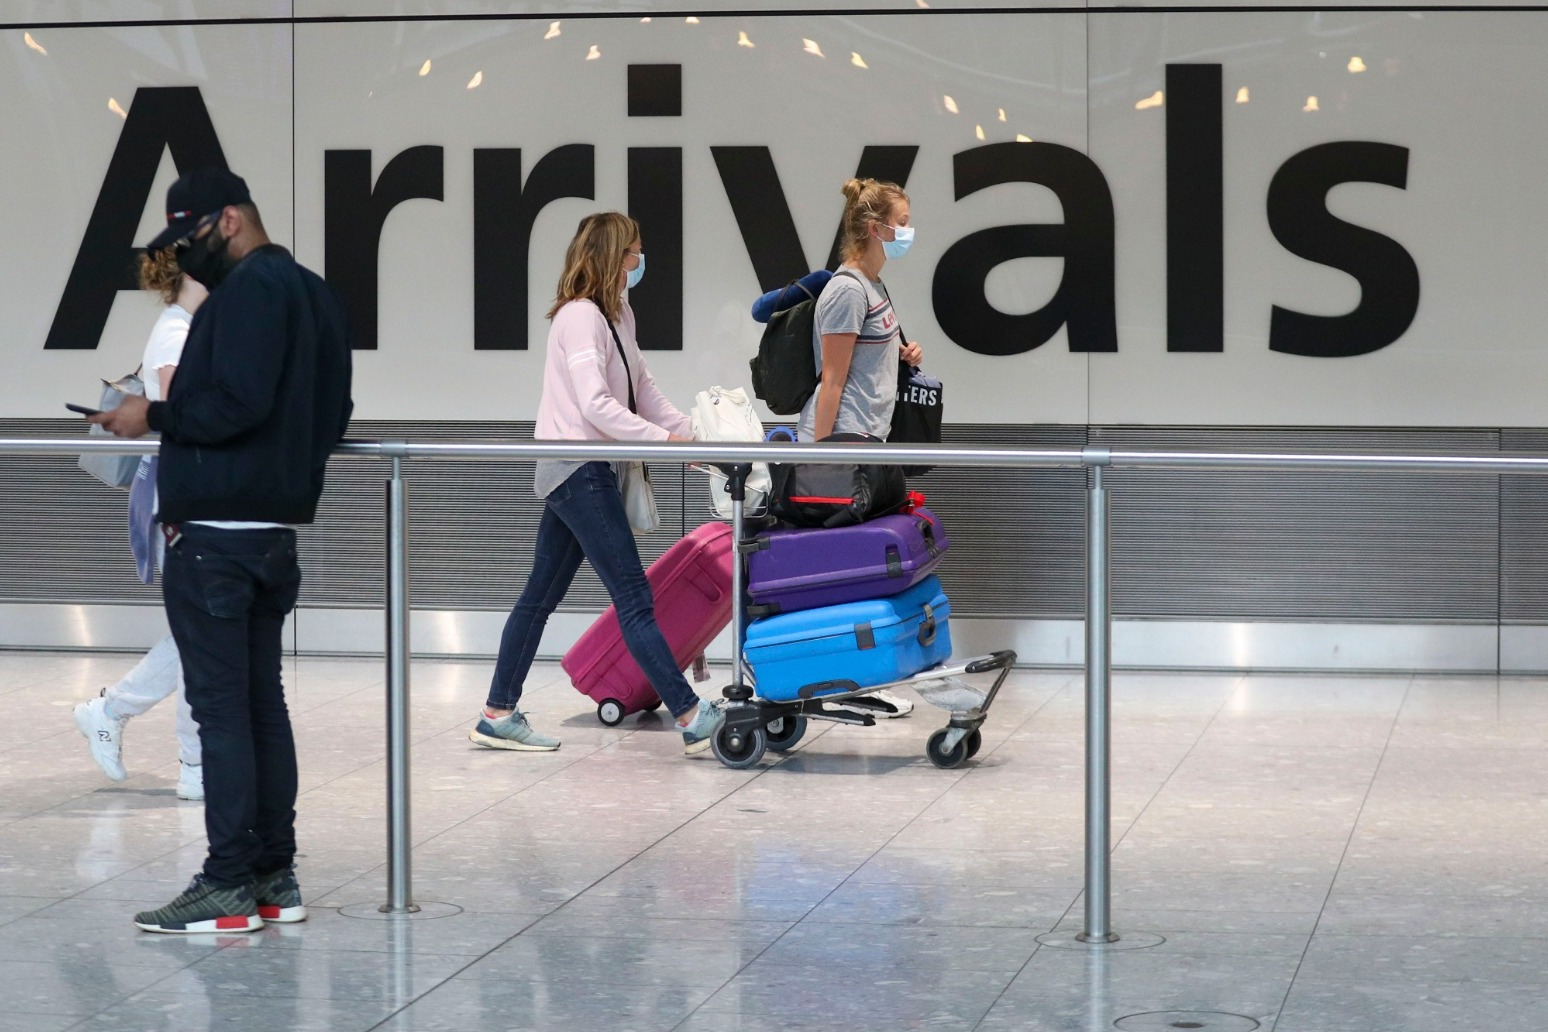 Heathrow boss calls for coronavirus testing on arrival